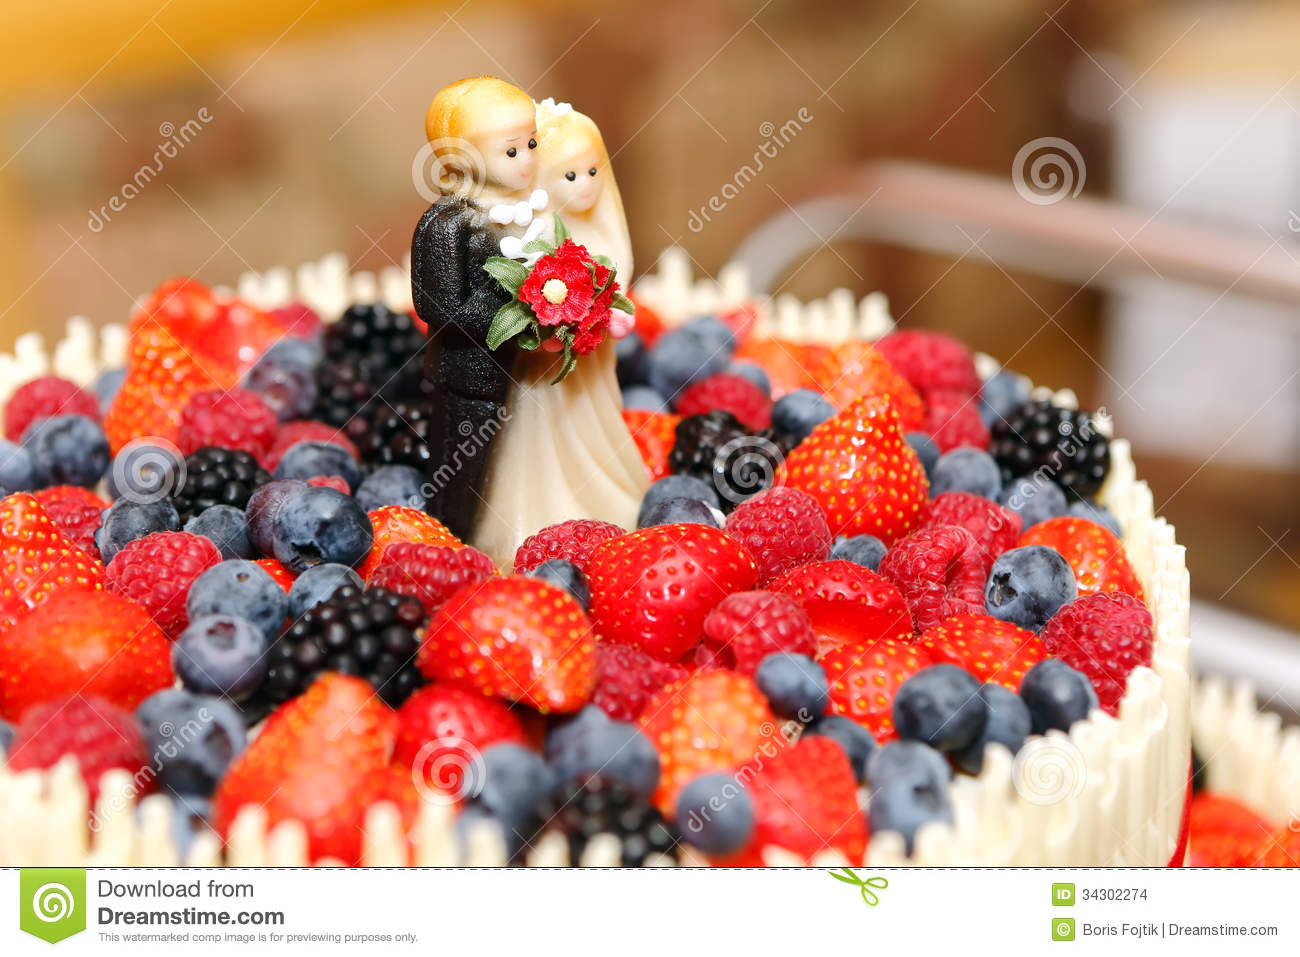 wedding cake recipes fruit wedding cake topper stock photo image of berry 23625